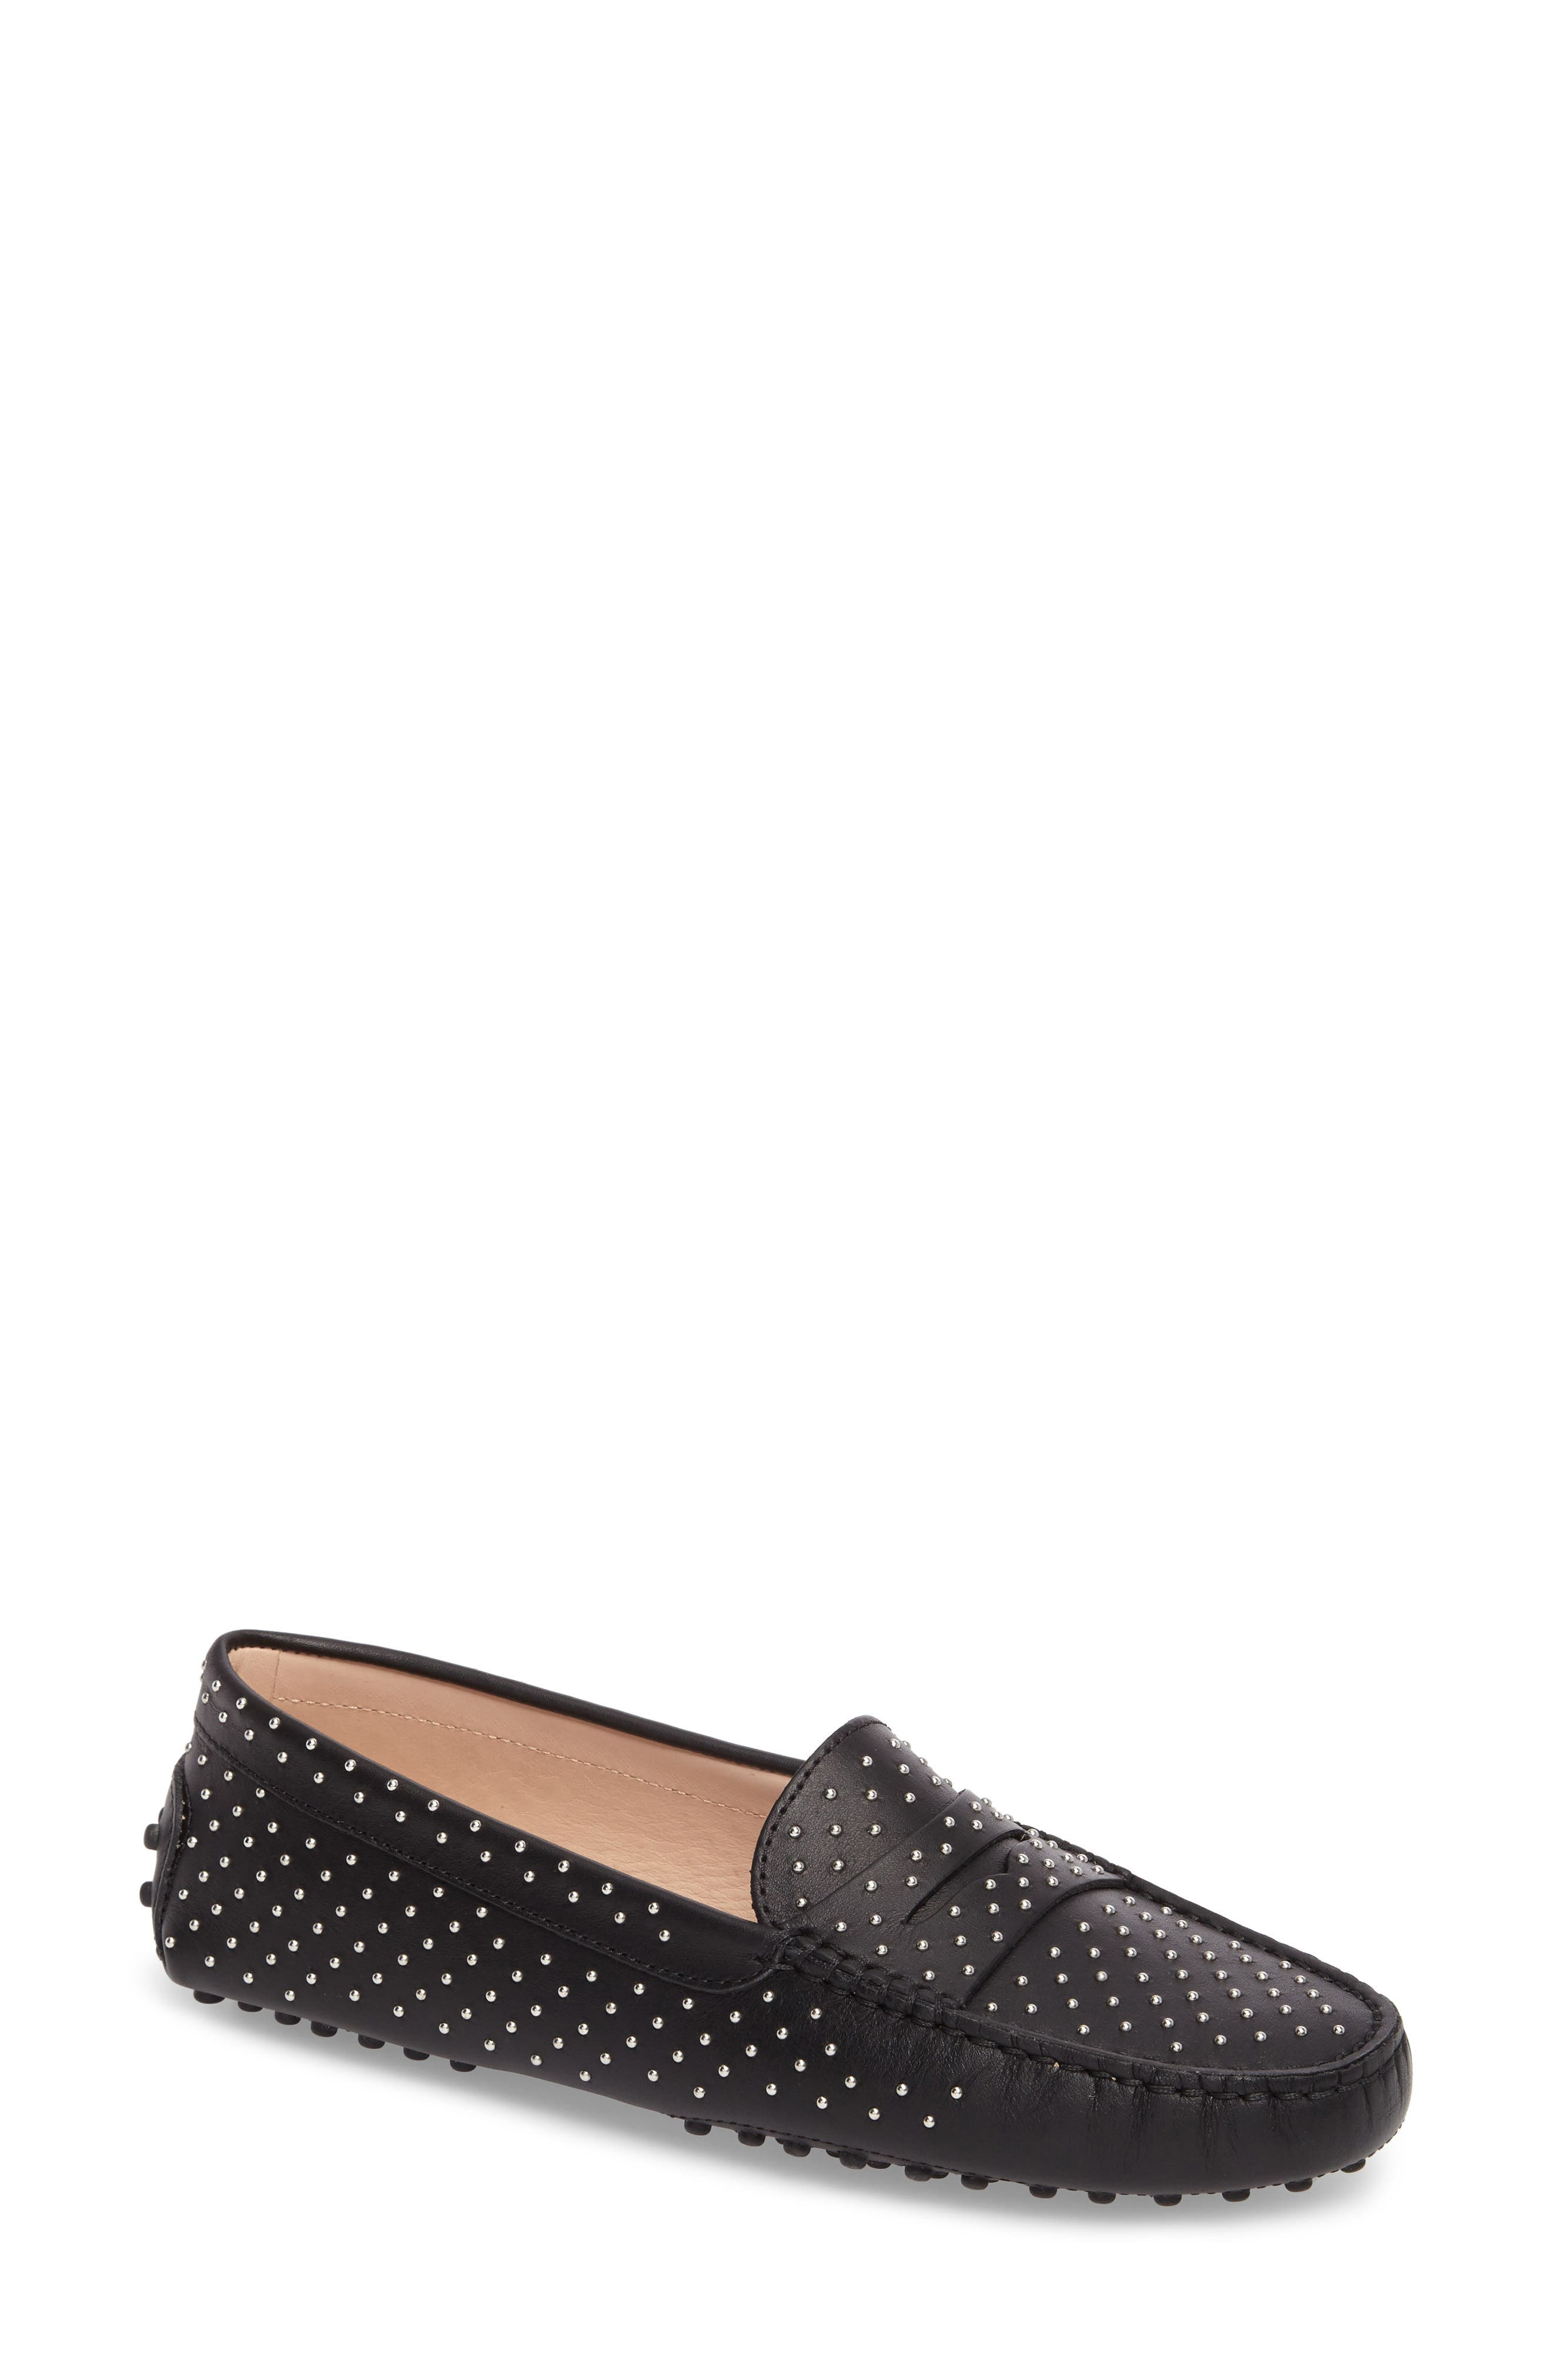 Gommini Stud Penny Loafer,                         Main,                         color, 001